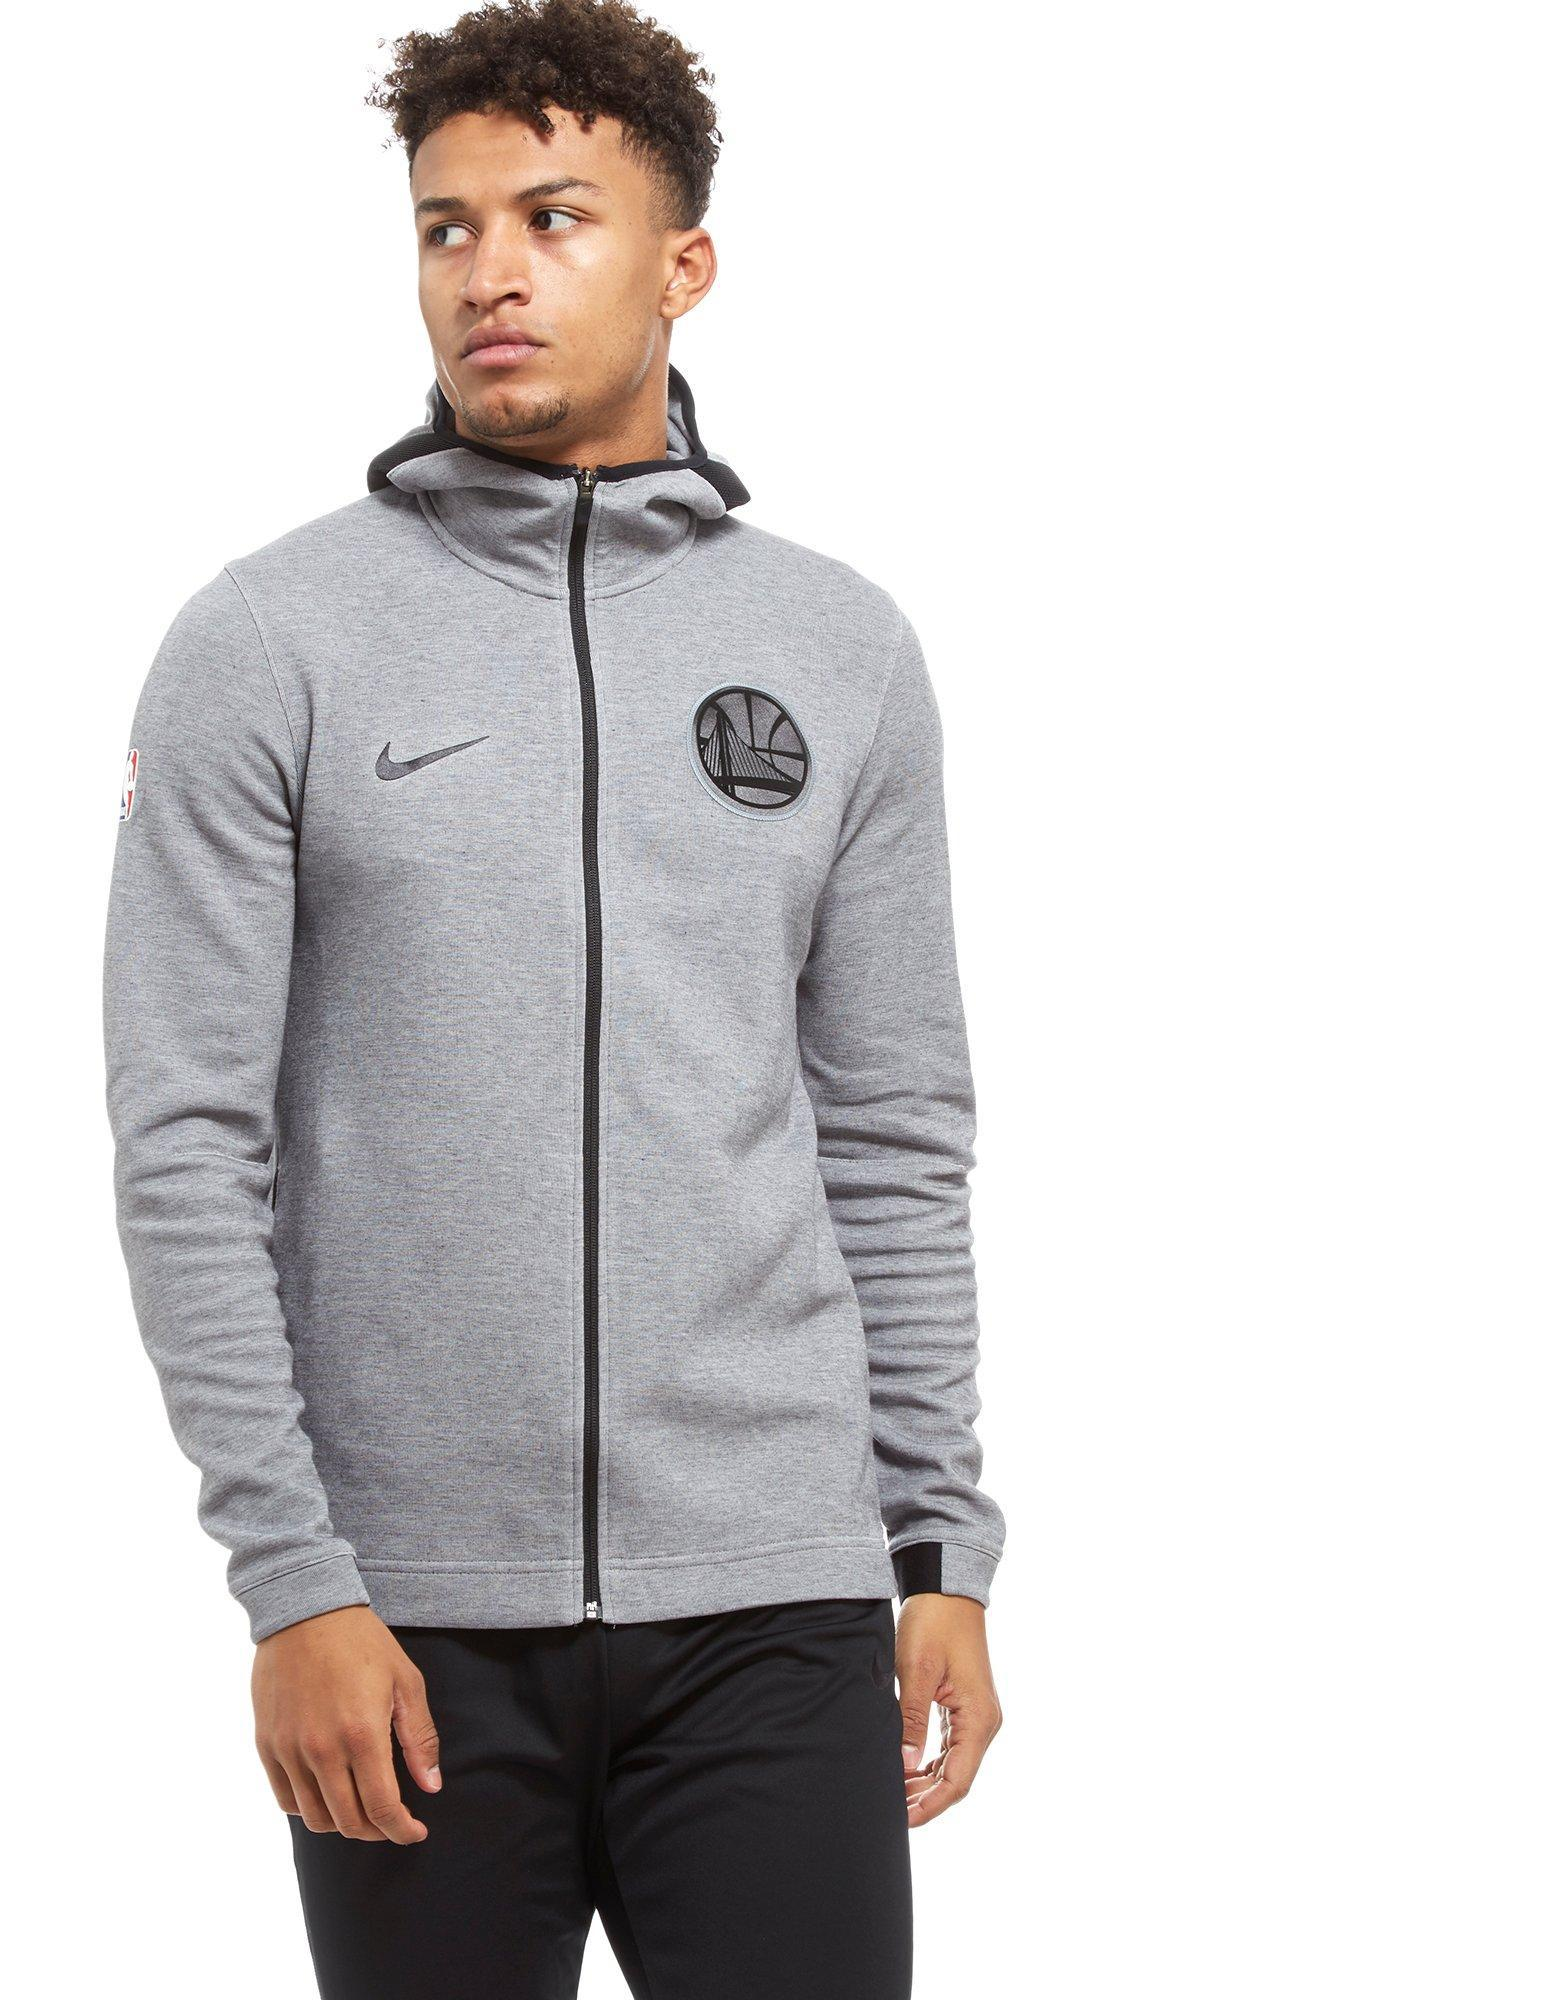 d7f7f21942fb82 Nike Nba Golden State Warriors Therma Flex Hoodie in Gray for Men - Lyst